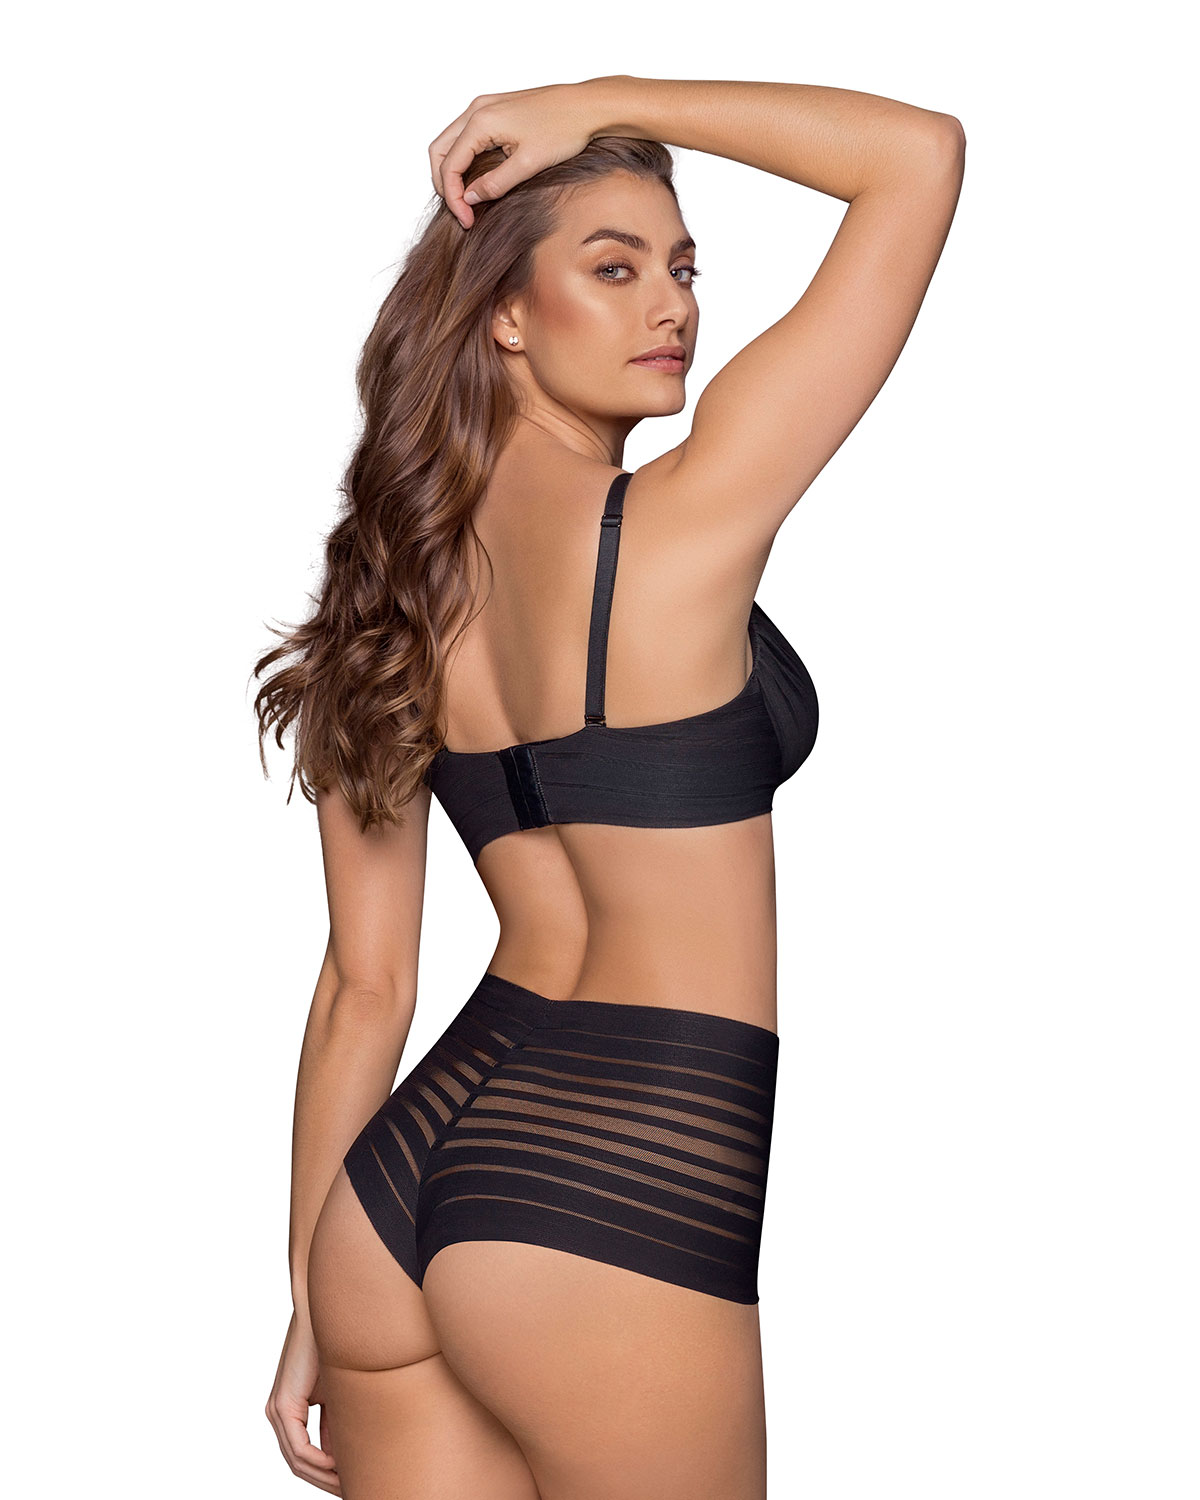 The high waist underwear panties are for any occasion Barbra's 6 Pack Satin Full Coverage Women's Panties. by Barbra Lingerie. $ - $ $ 12 $ 28 99 Prime. FREE Shipping on eligible orders. Some sizes/colors are Prime eligible. out of 5 stars Previous Page 1 2 3 20 Next Page. Show results for.